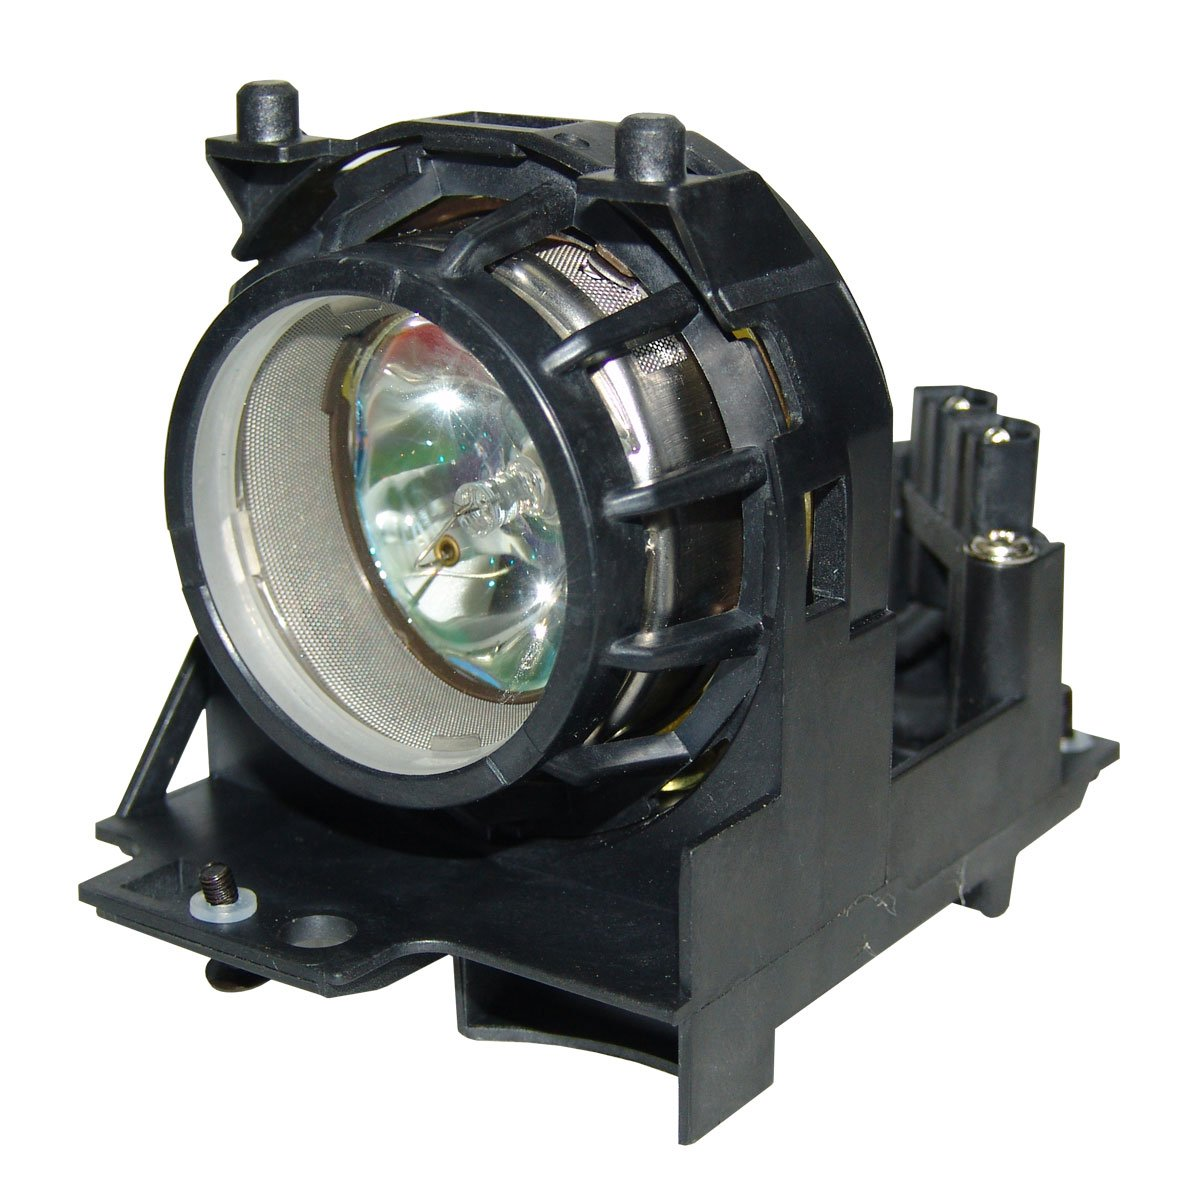 AuraBeam Professional Replacement Projector Lamp for Panasonic ET-LAD7700 with Housing Powered by Ushio